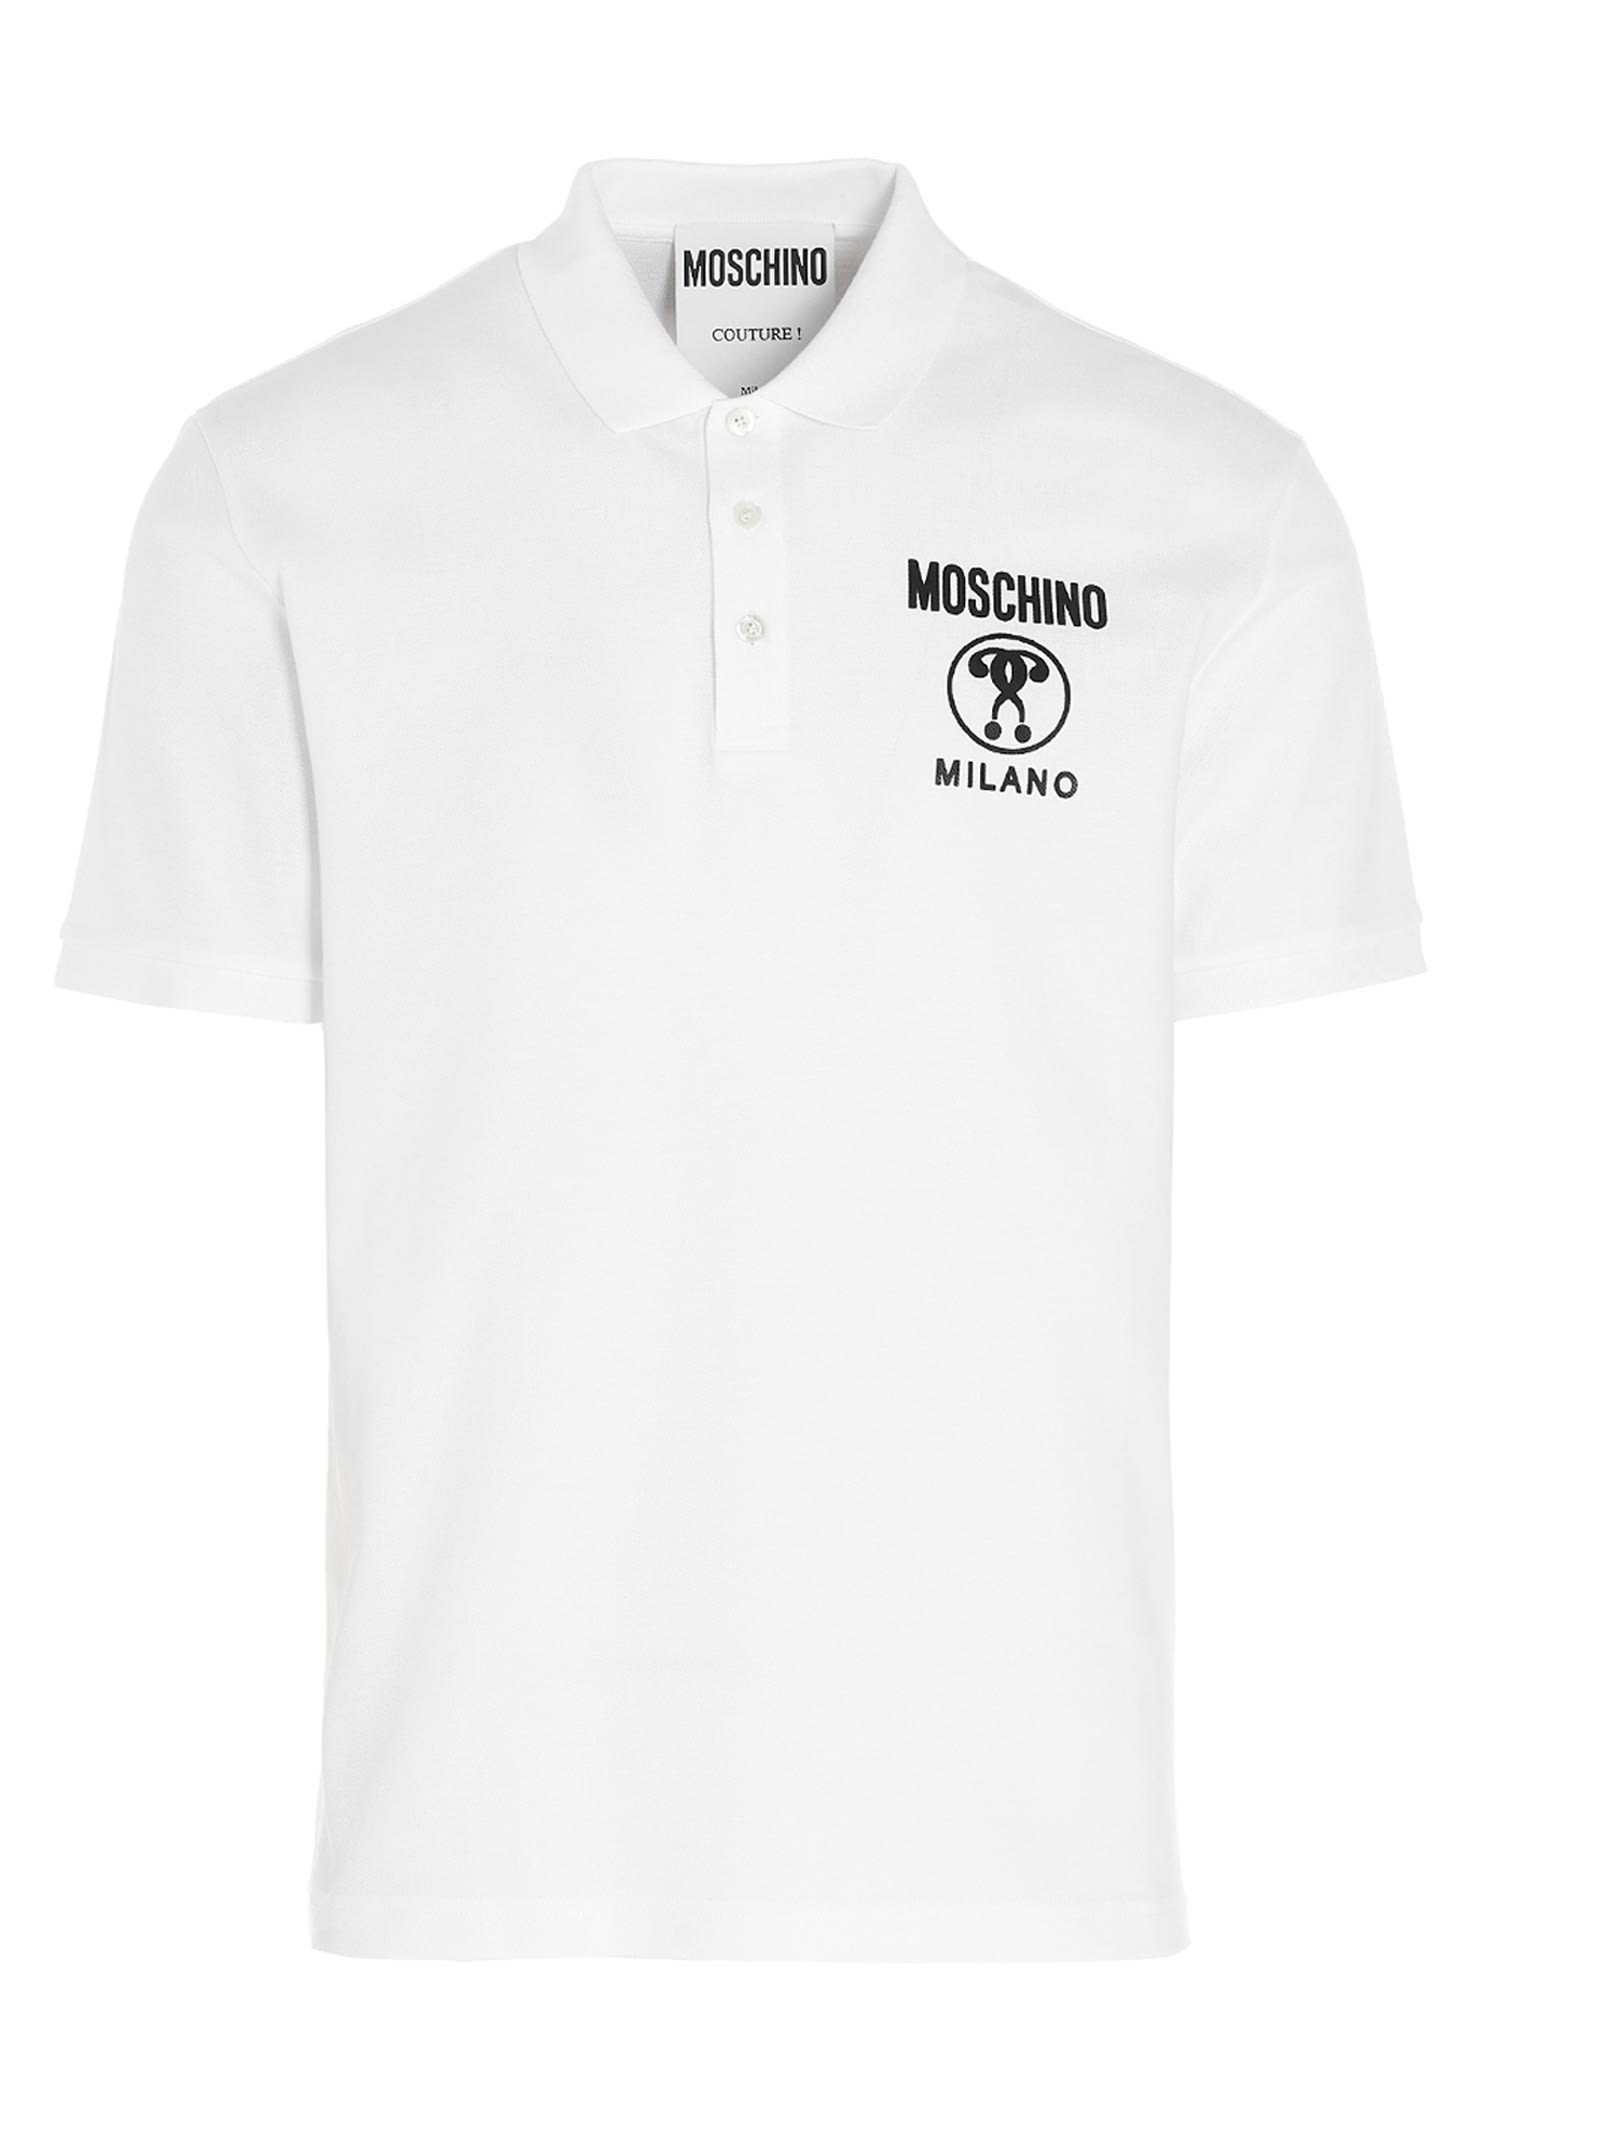 Moschino DOUBLE QUESTION MARK POLO